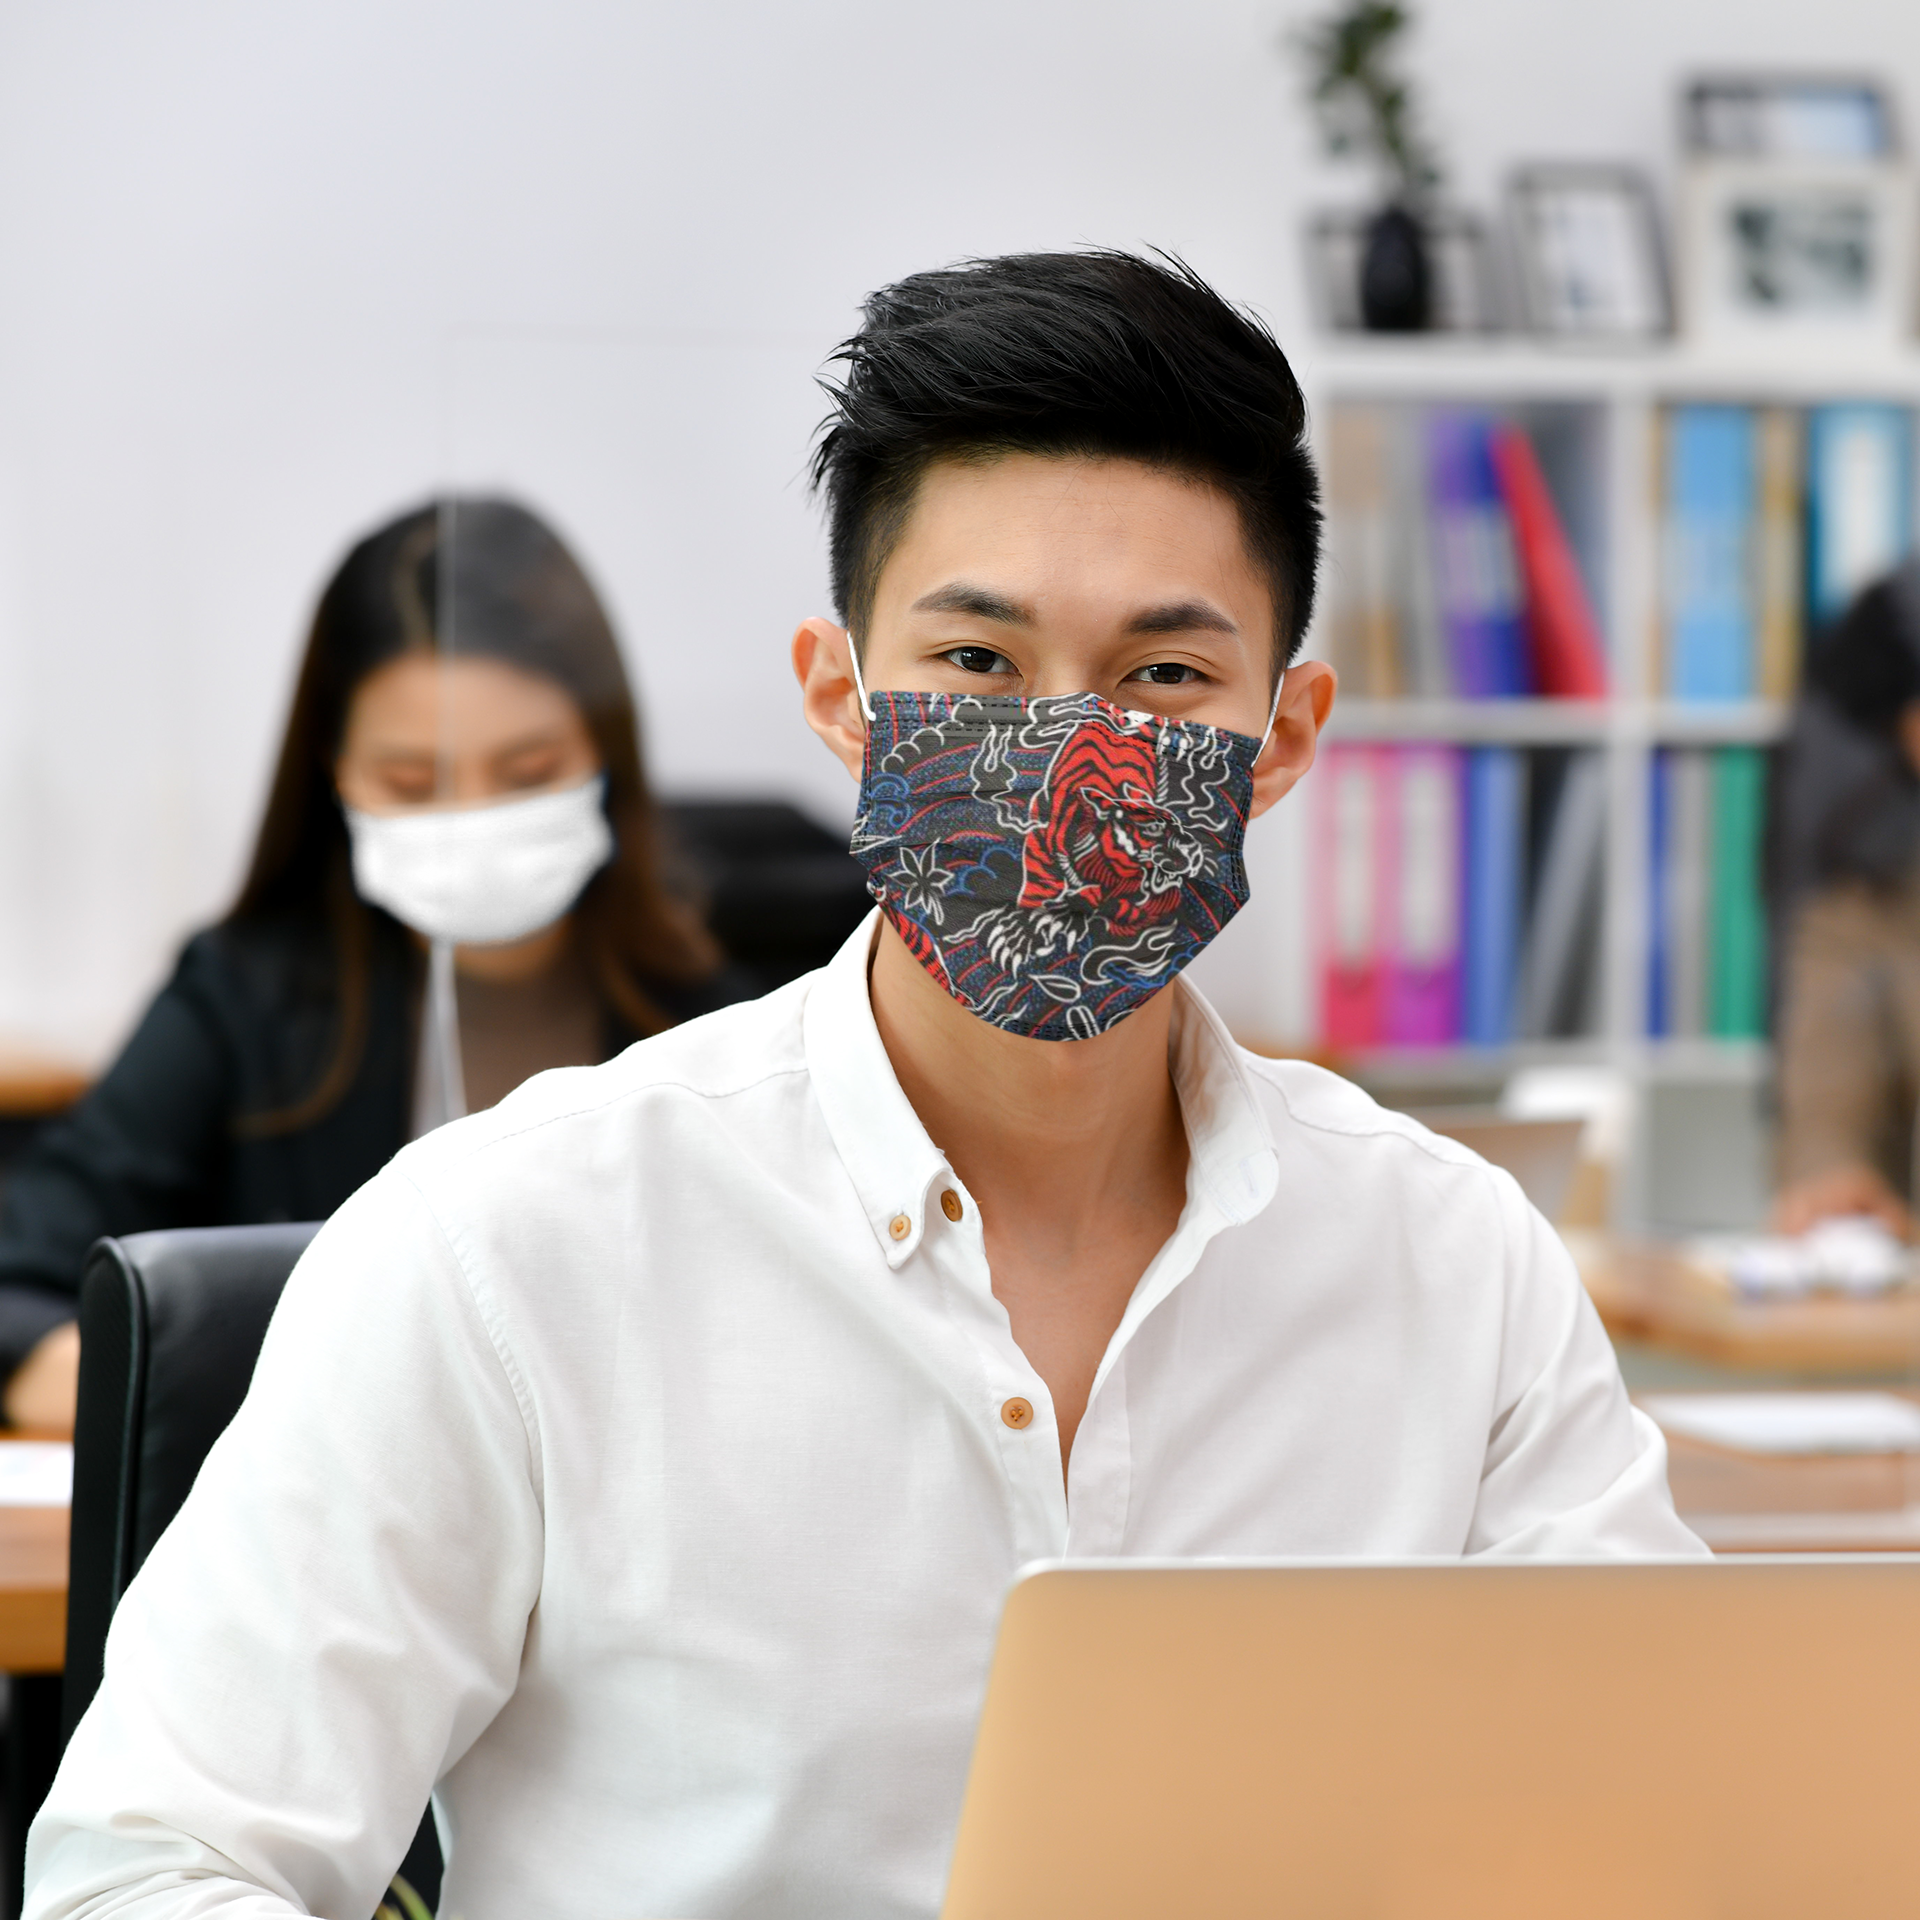 mockup-of-a-man-wearing-a-face-mask-at-an-office-41989-r-el2 (6).png